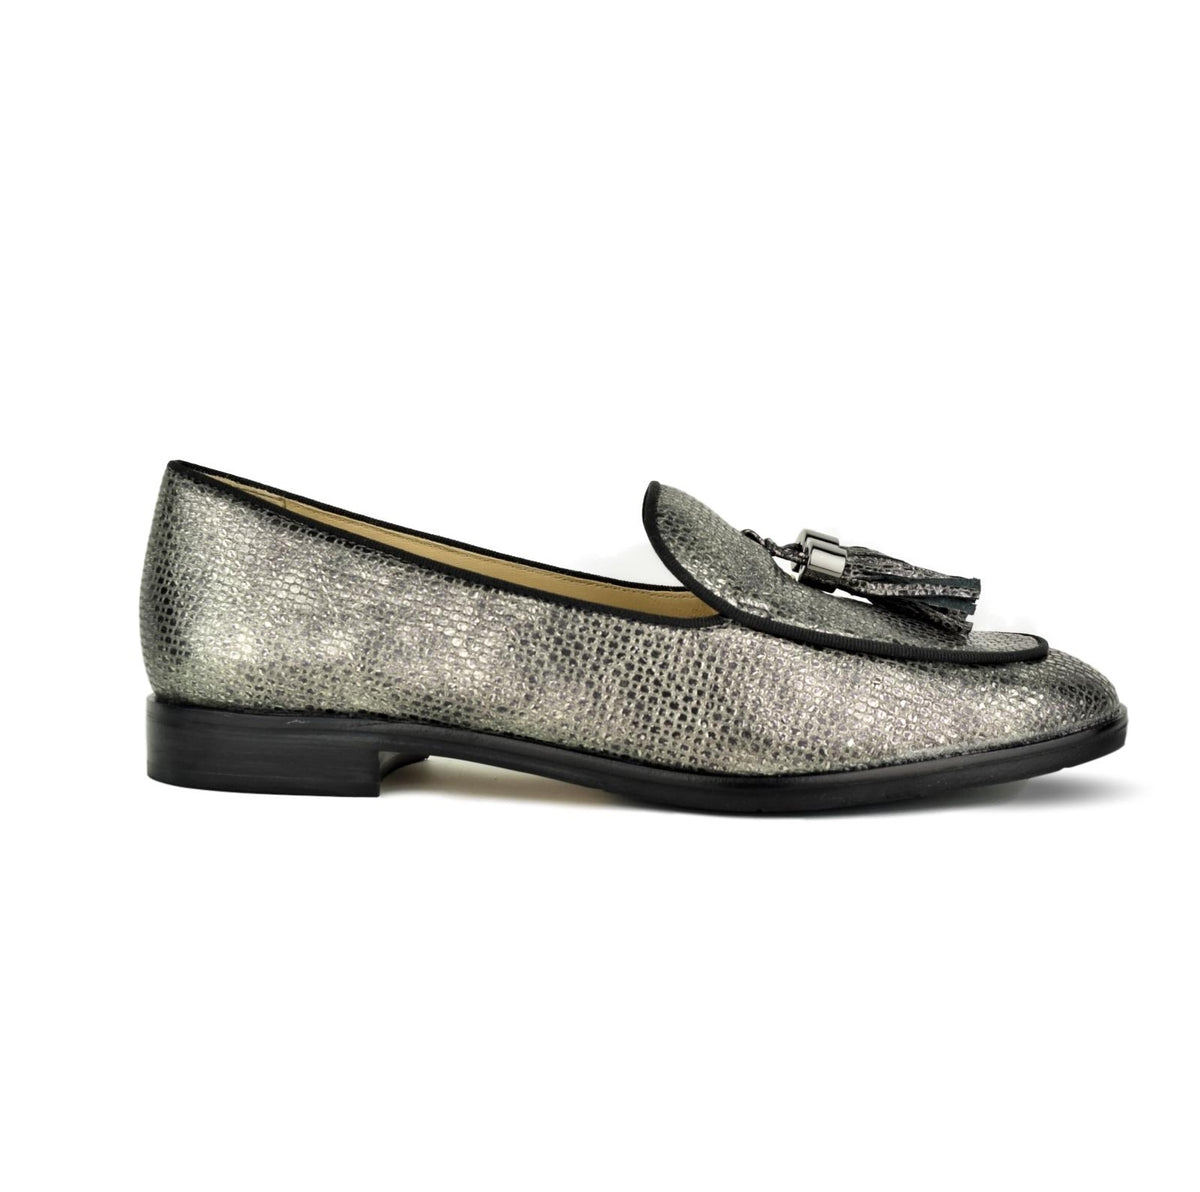 AMBRO - Wirth Loafer Pewter Print